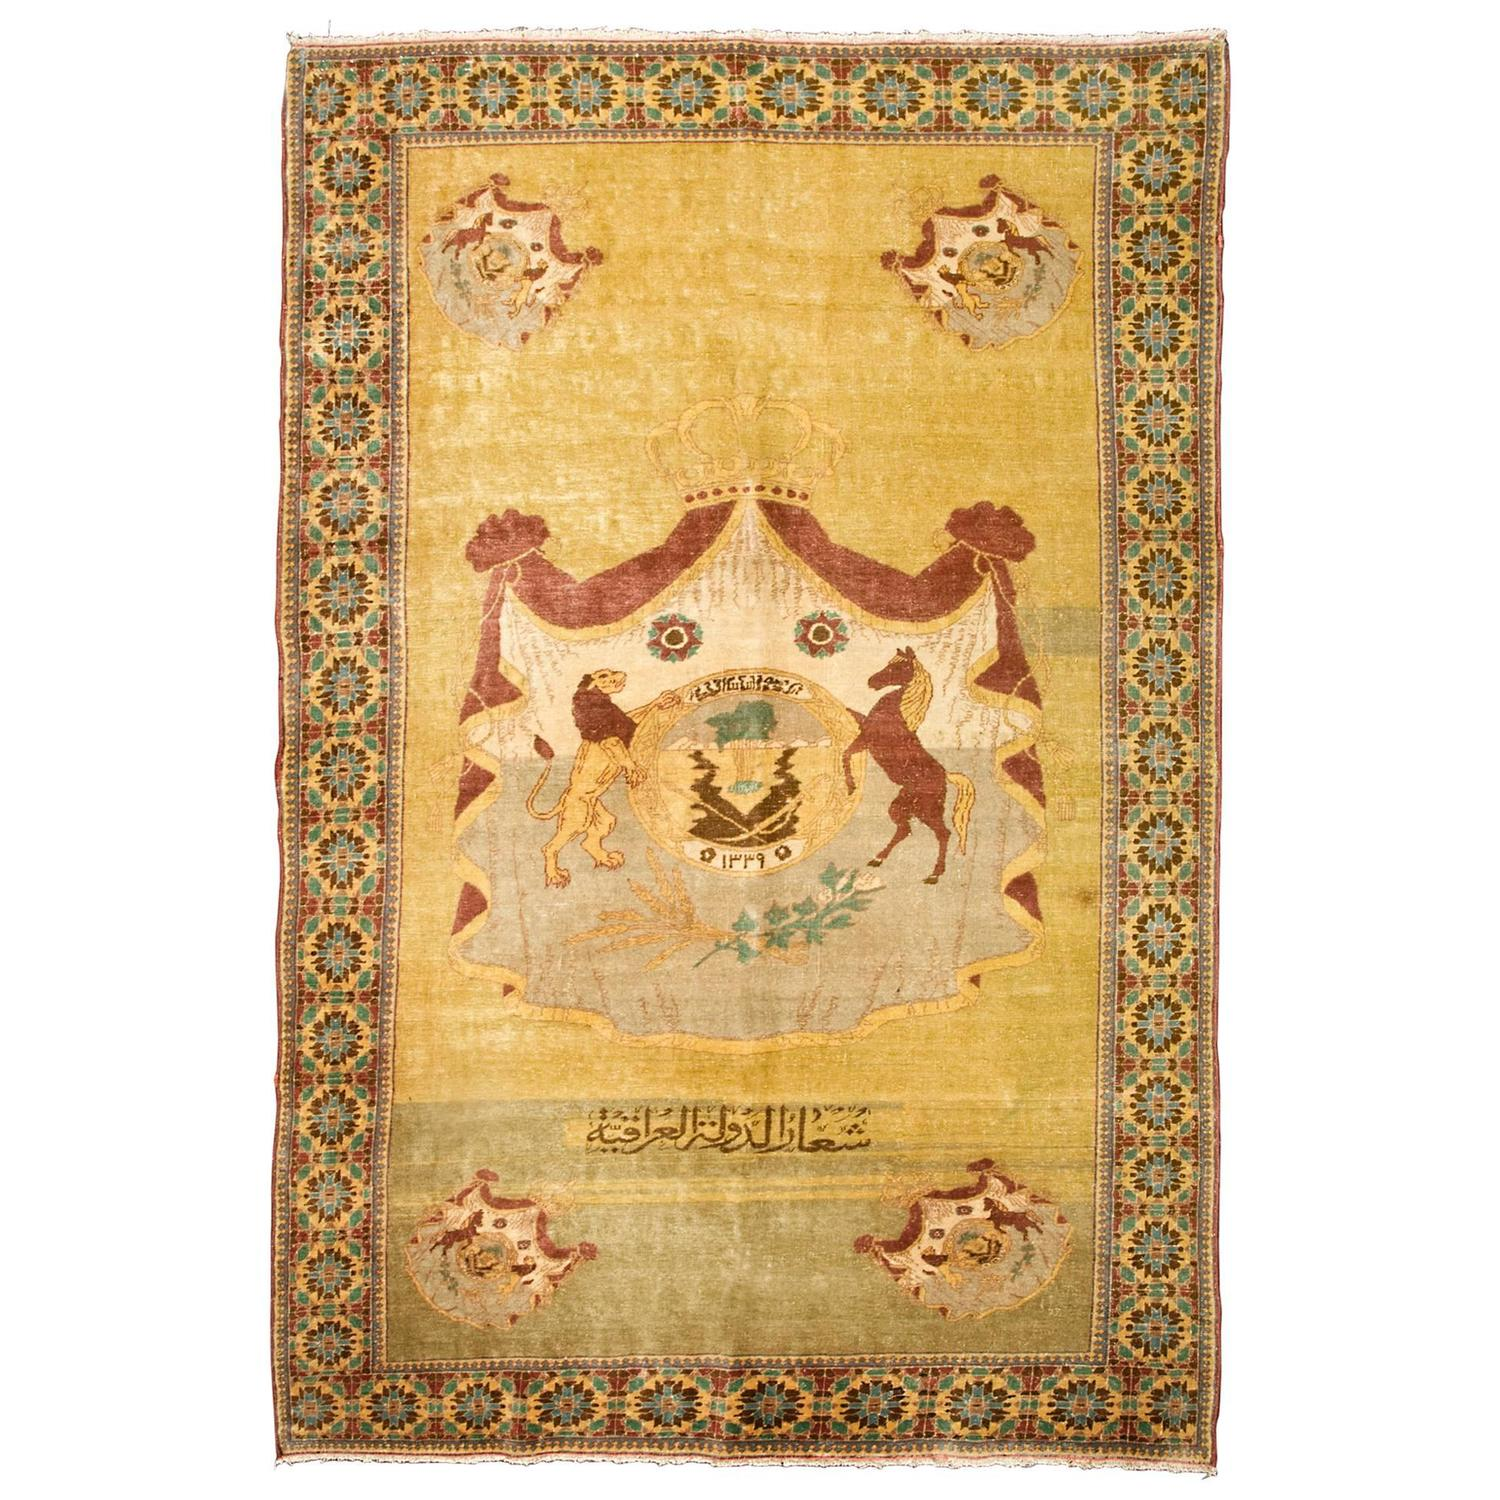 Early 20th Century Wool Rug With The Coat Of Arms Of The